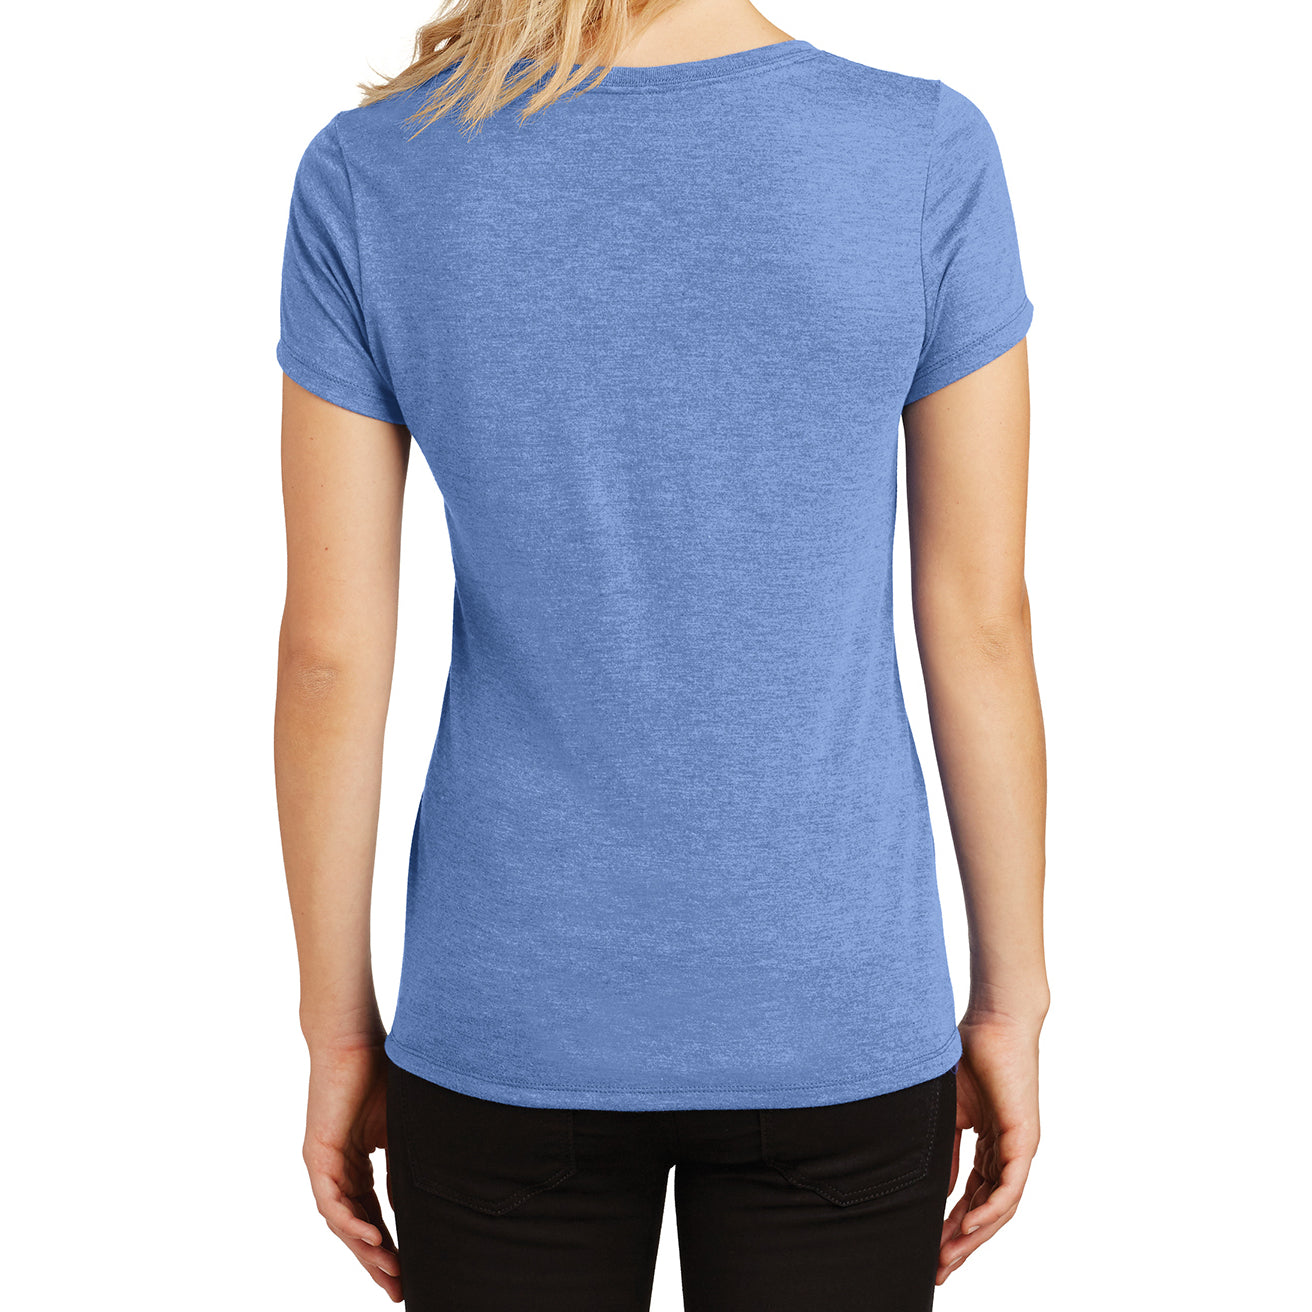 Women's Perfect Tri V-Neck Tee - Maritime Frost - Back